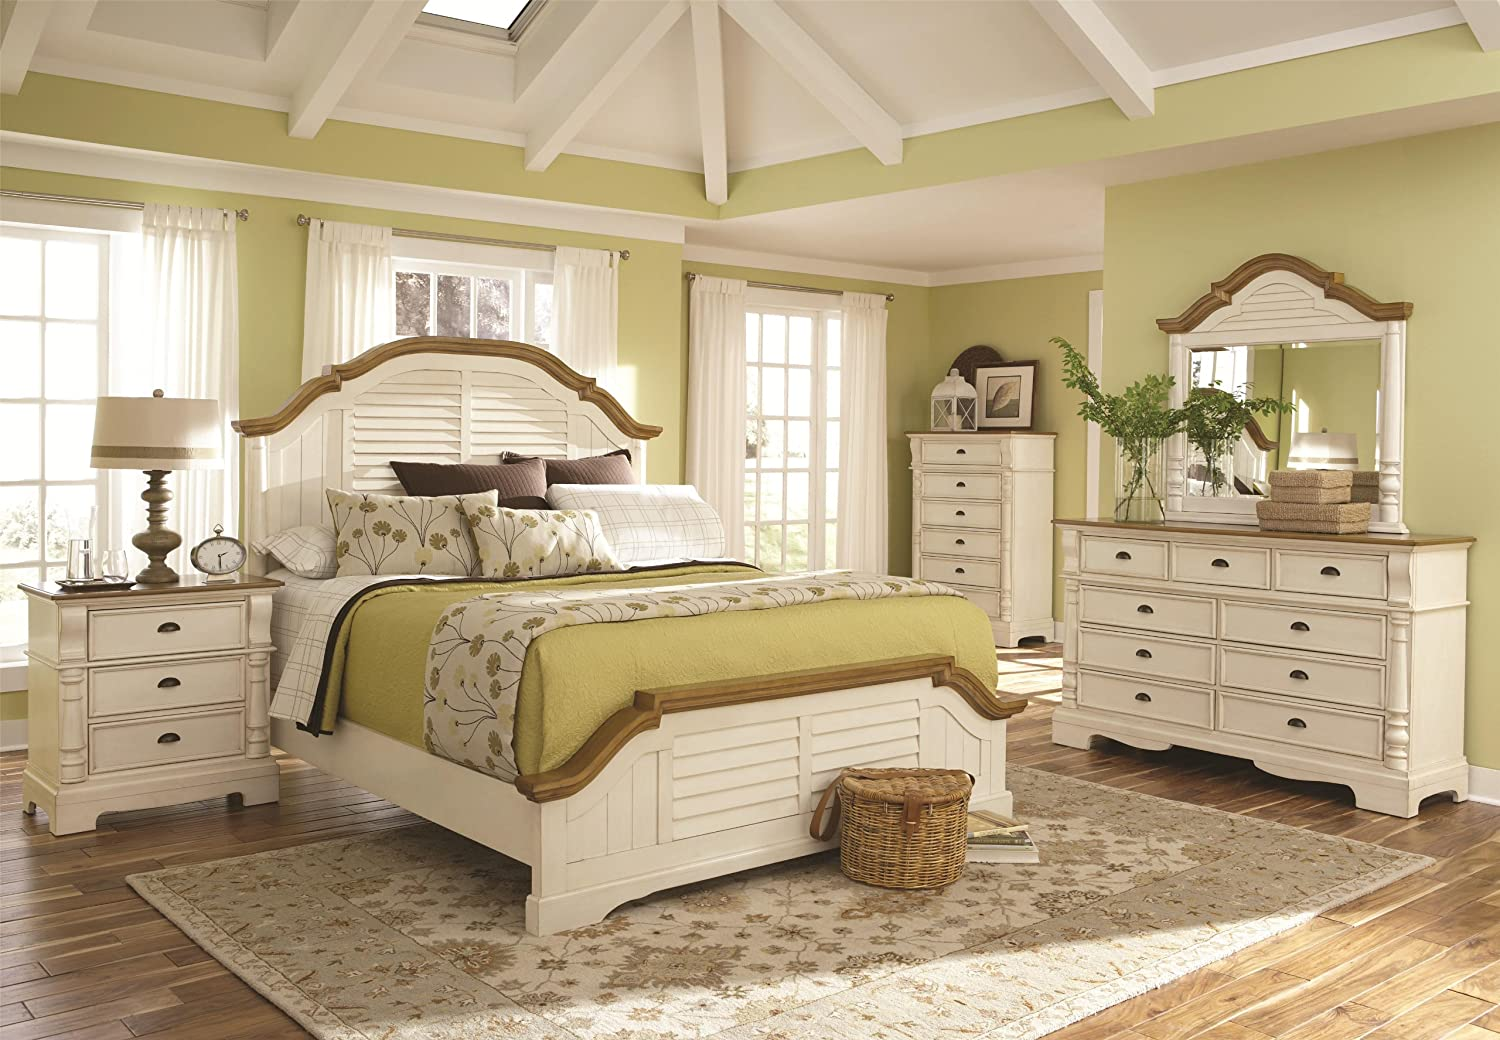 Amazon.com: Oetla Collection Bedroom Classic Country Cottage ...